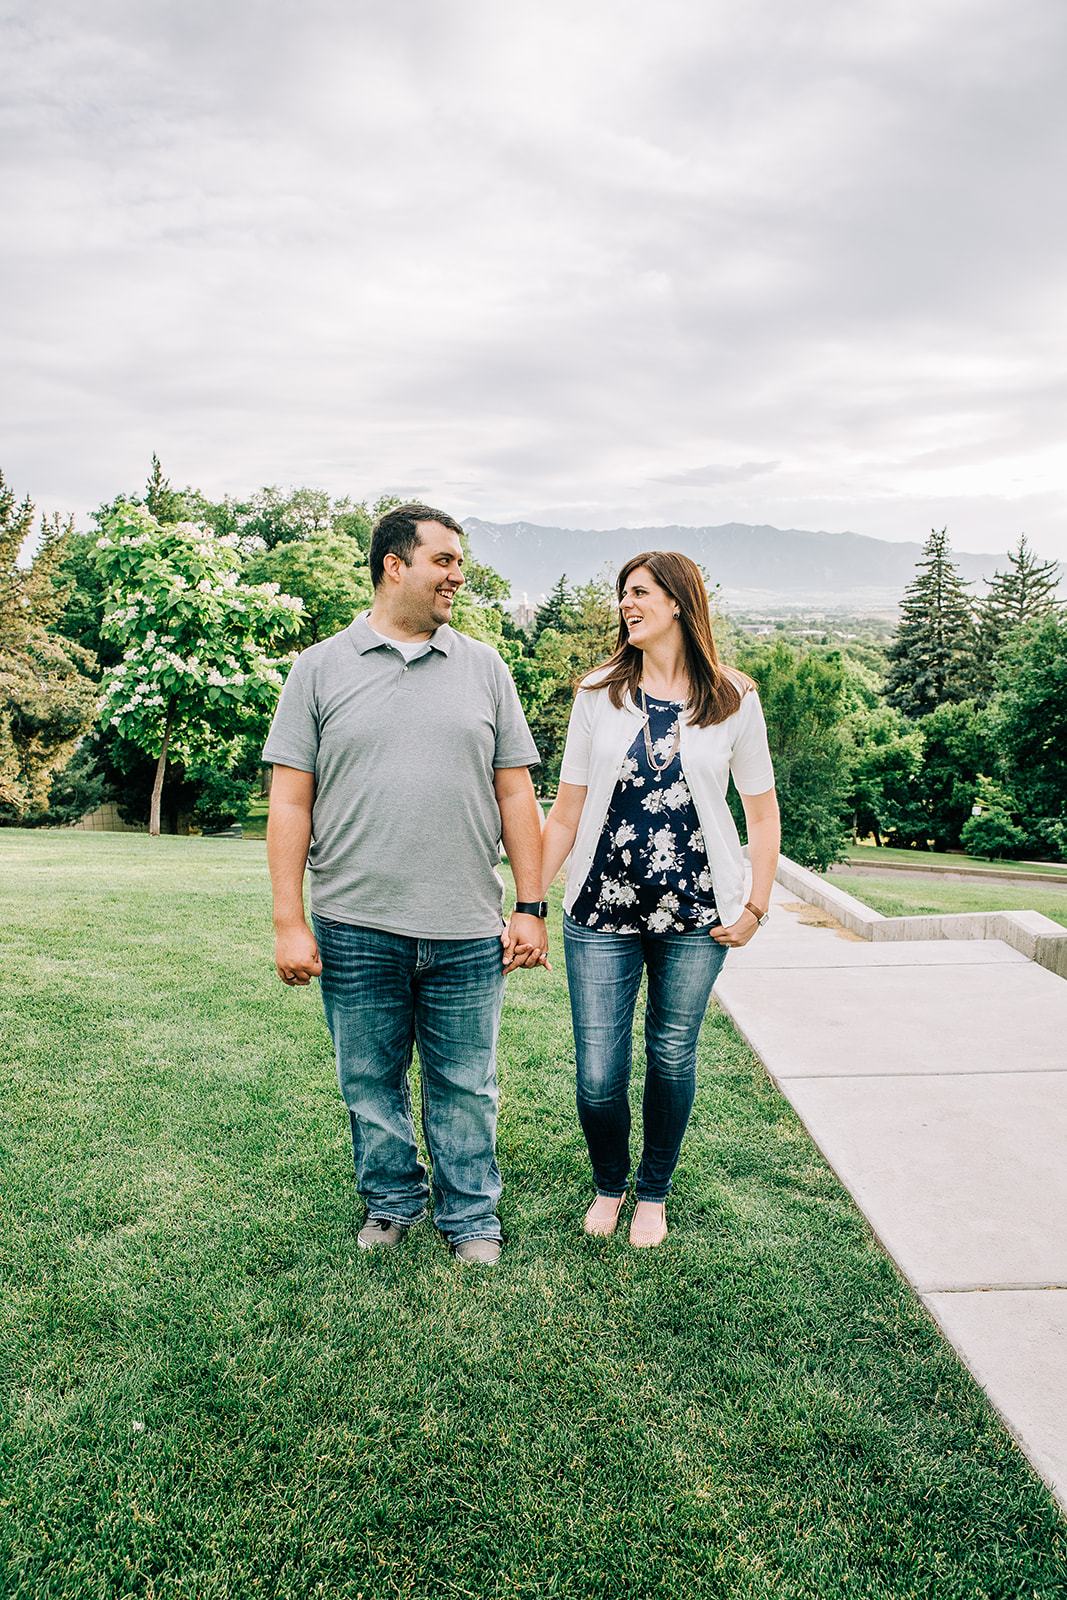 Engagement pictures happy couple holding hands walking on a college campus professional engagement photos by Bella Alder Photography available for travel around Northern Utah #bellaalderphoto #engagements #ldsengagements #engagementsession #engagementphotographer #ldsphotographer #loganutahphotographer